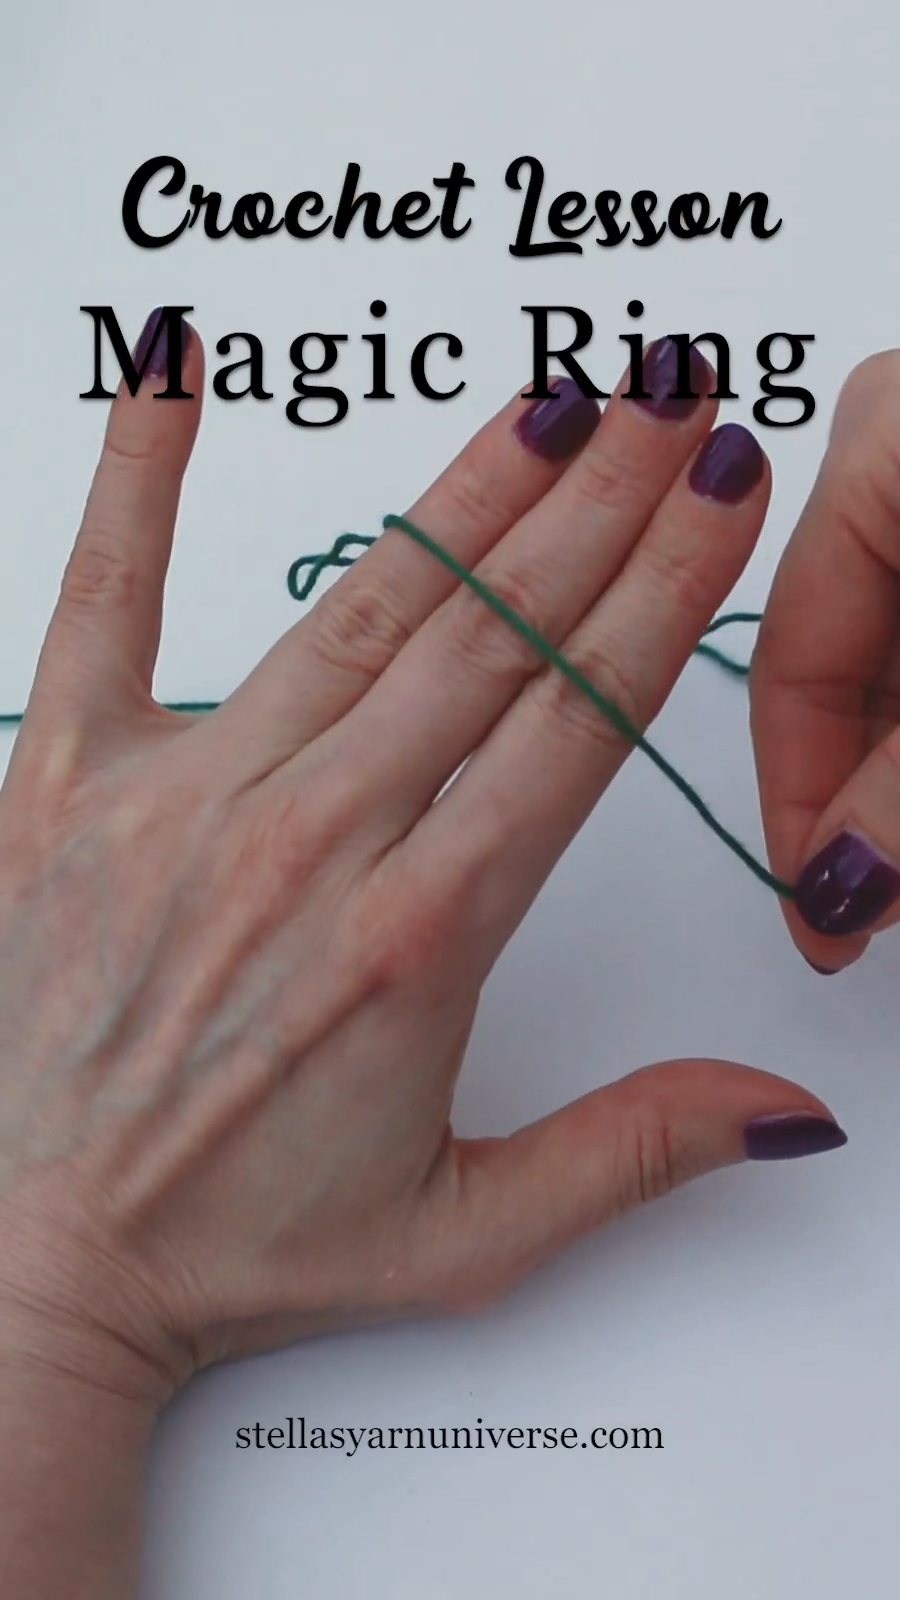 Photo of Magic Ring Crochet Lesson